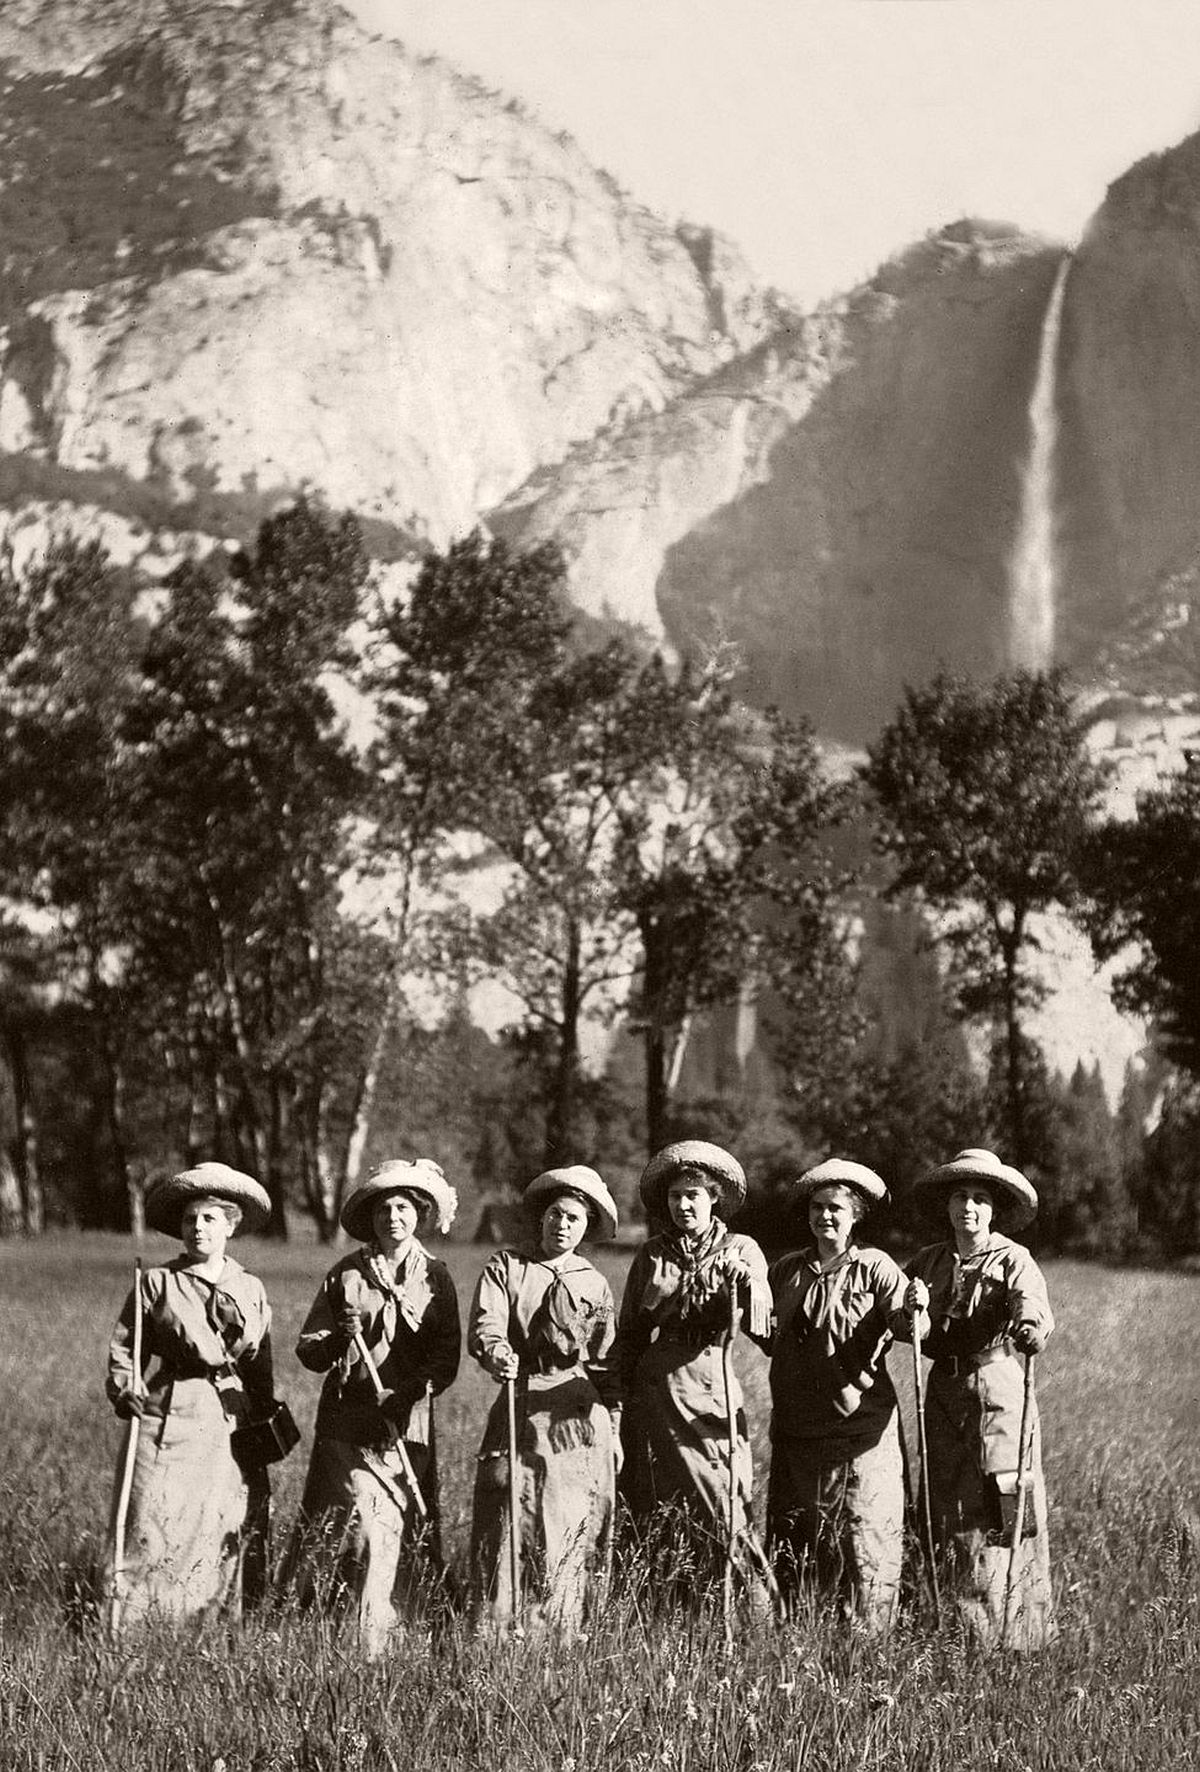 Tourists pose for a picture in front of Yosemite Falls, c.1900. (Jonathan Kirn/Corbis via Getty Images)